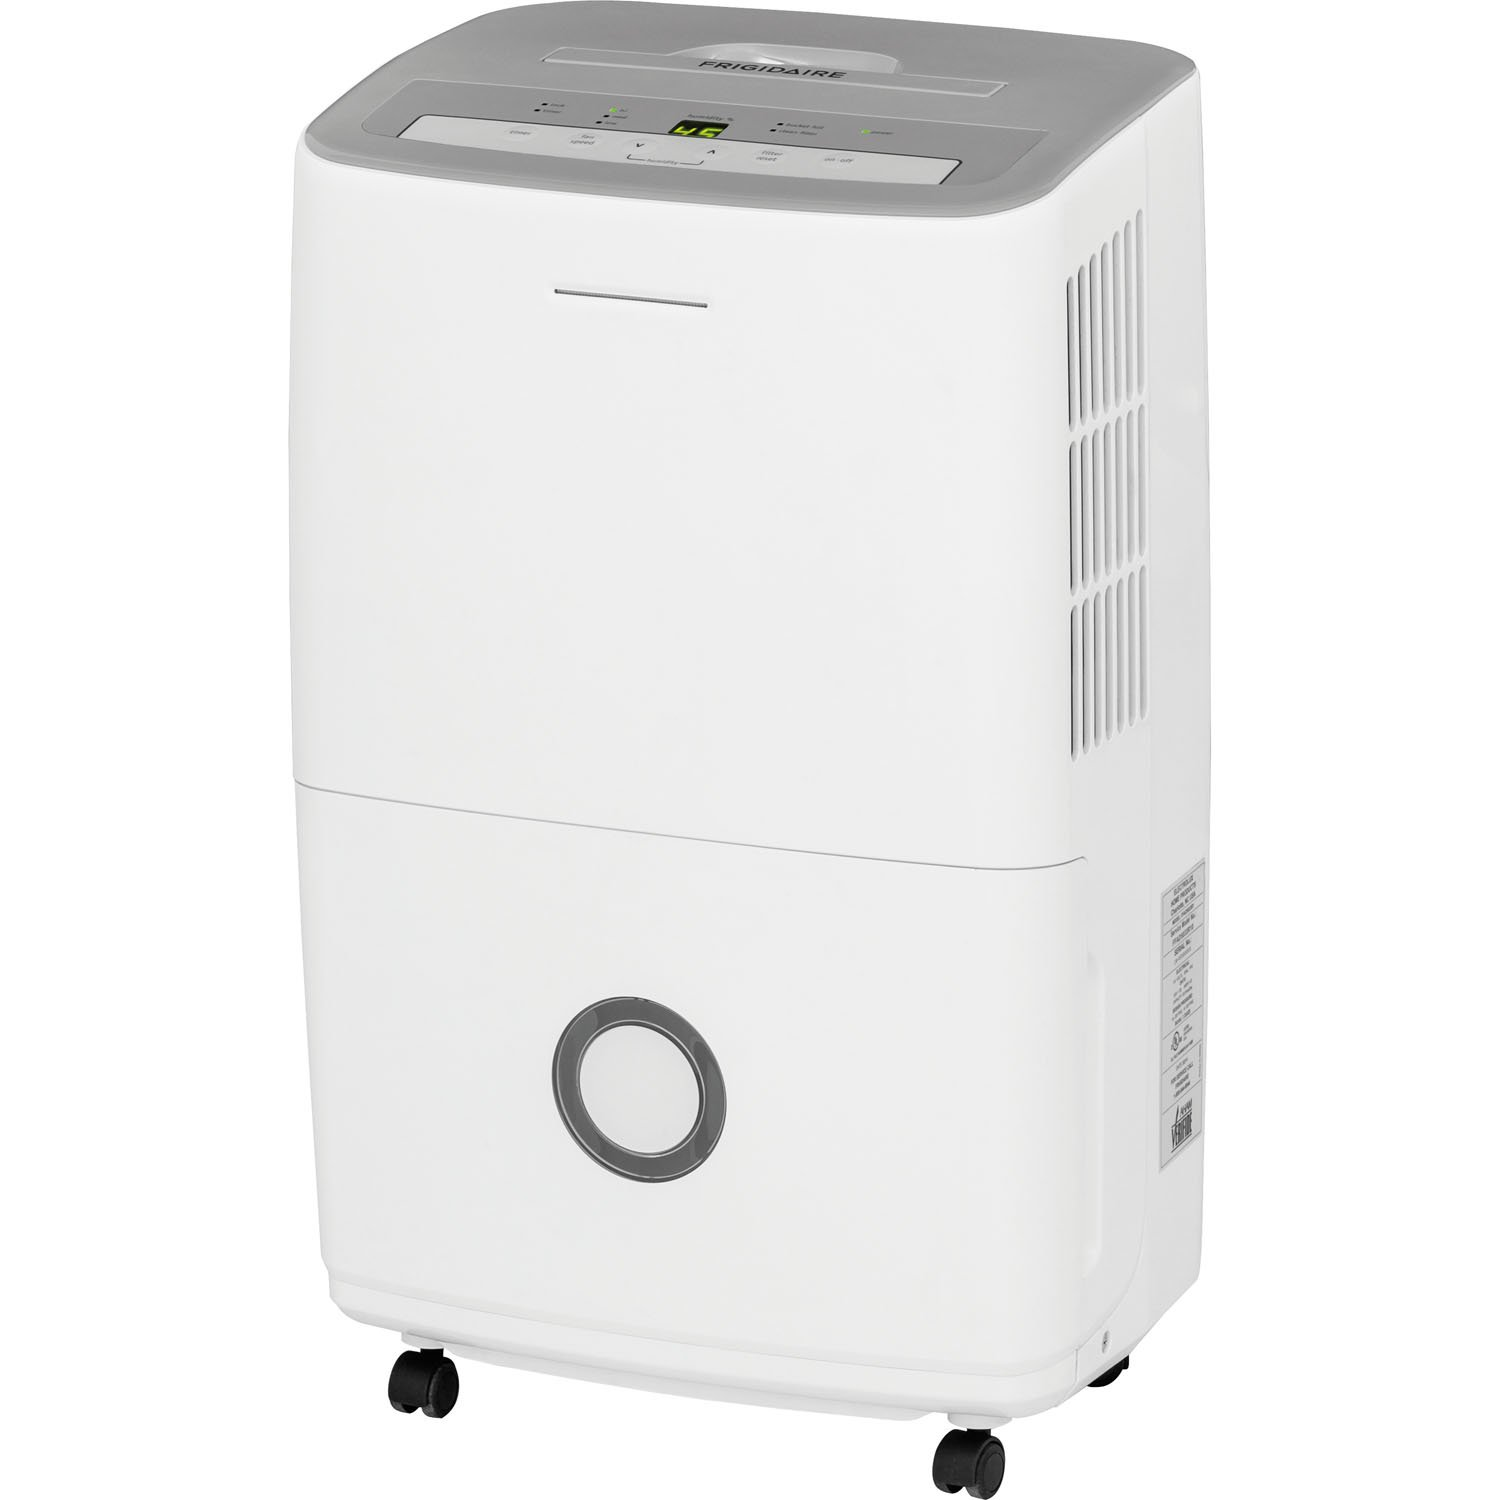 70-Pint Dehumidifier with Effortless Humidity Control, White by Frigidaire (Image #8)